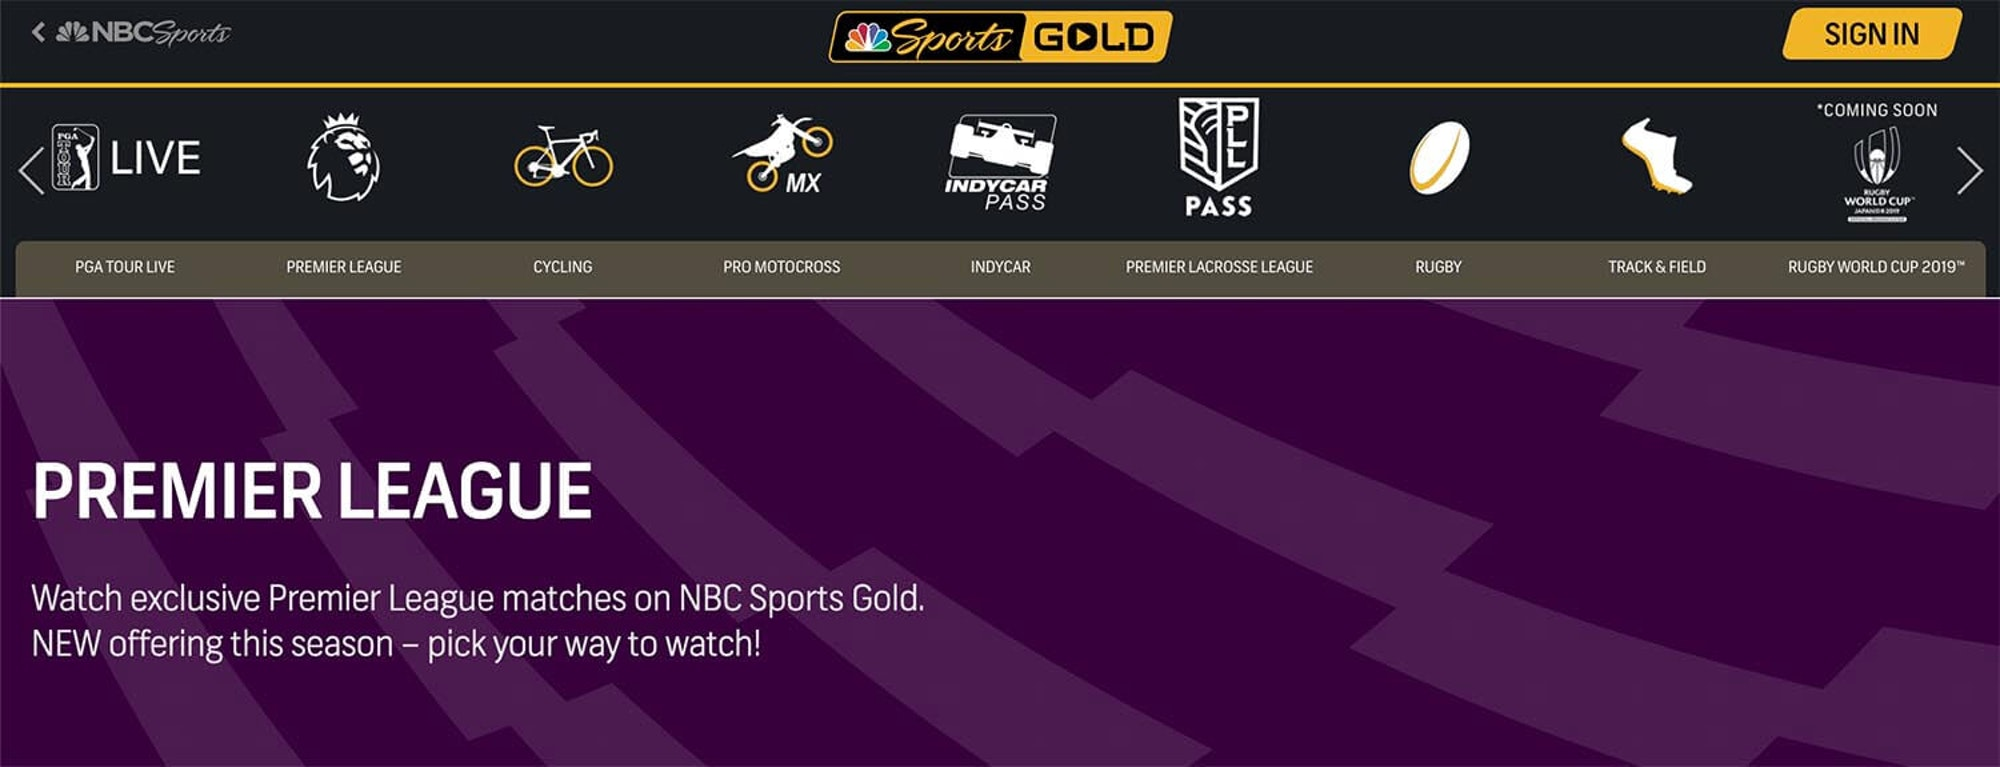 2019-20 premier league tottenham hotspur vs watford soccer live stream free nbc sports gold